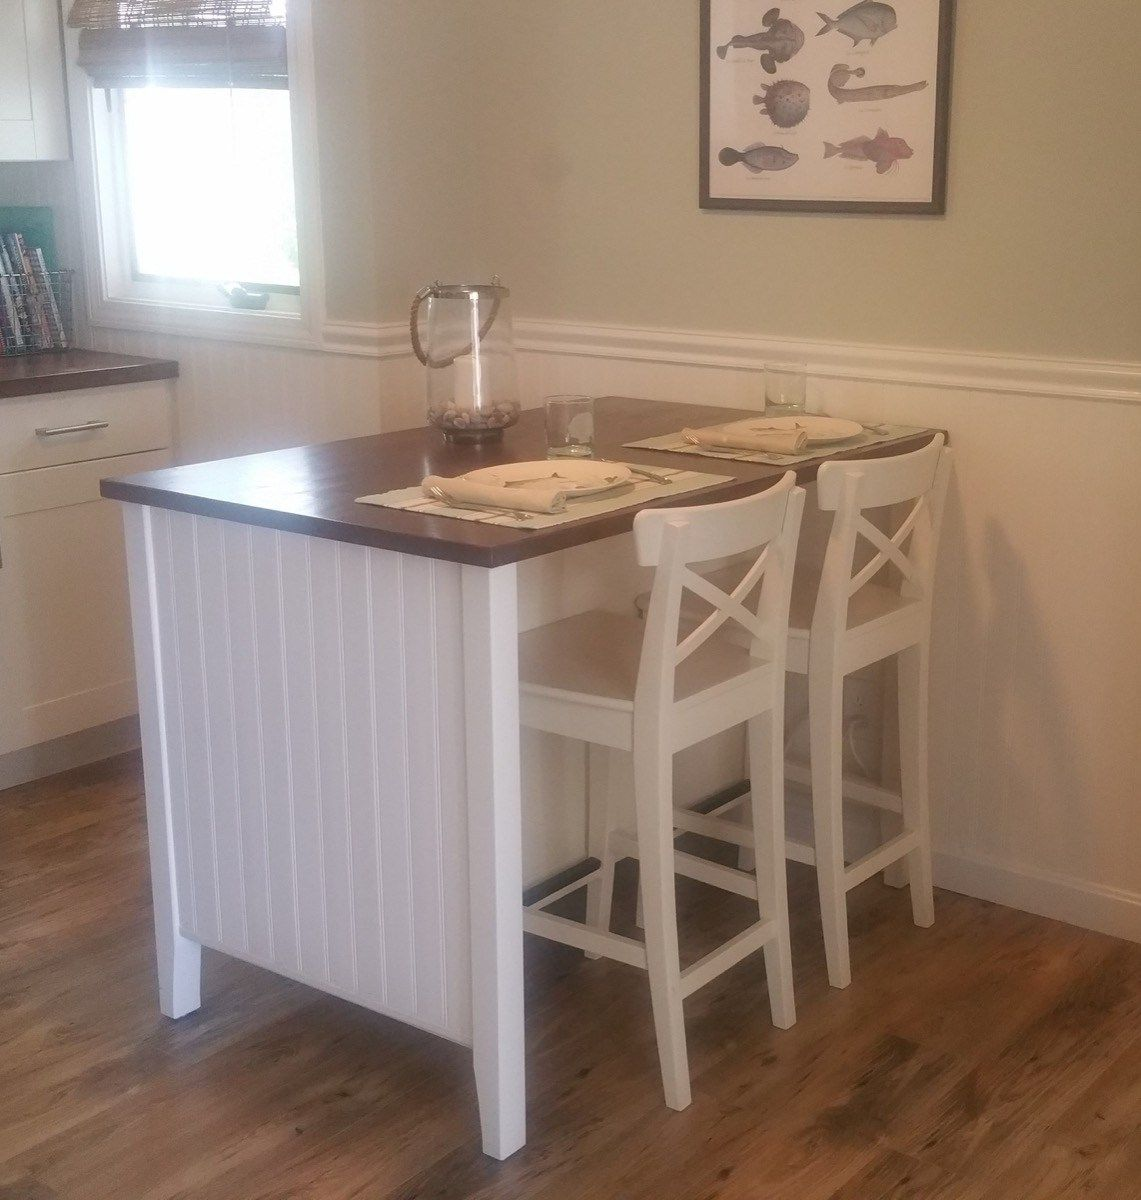 Coastal Makeover for STENSTORP kitchen island | Pinterest